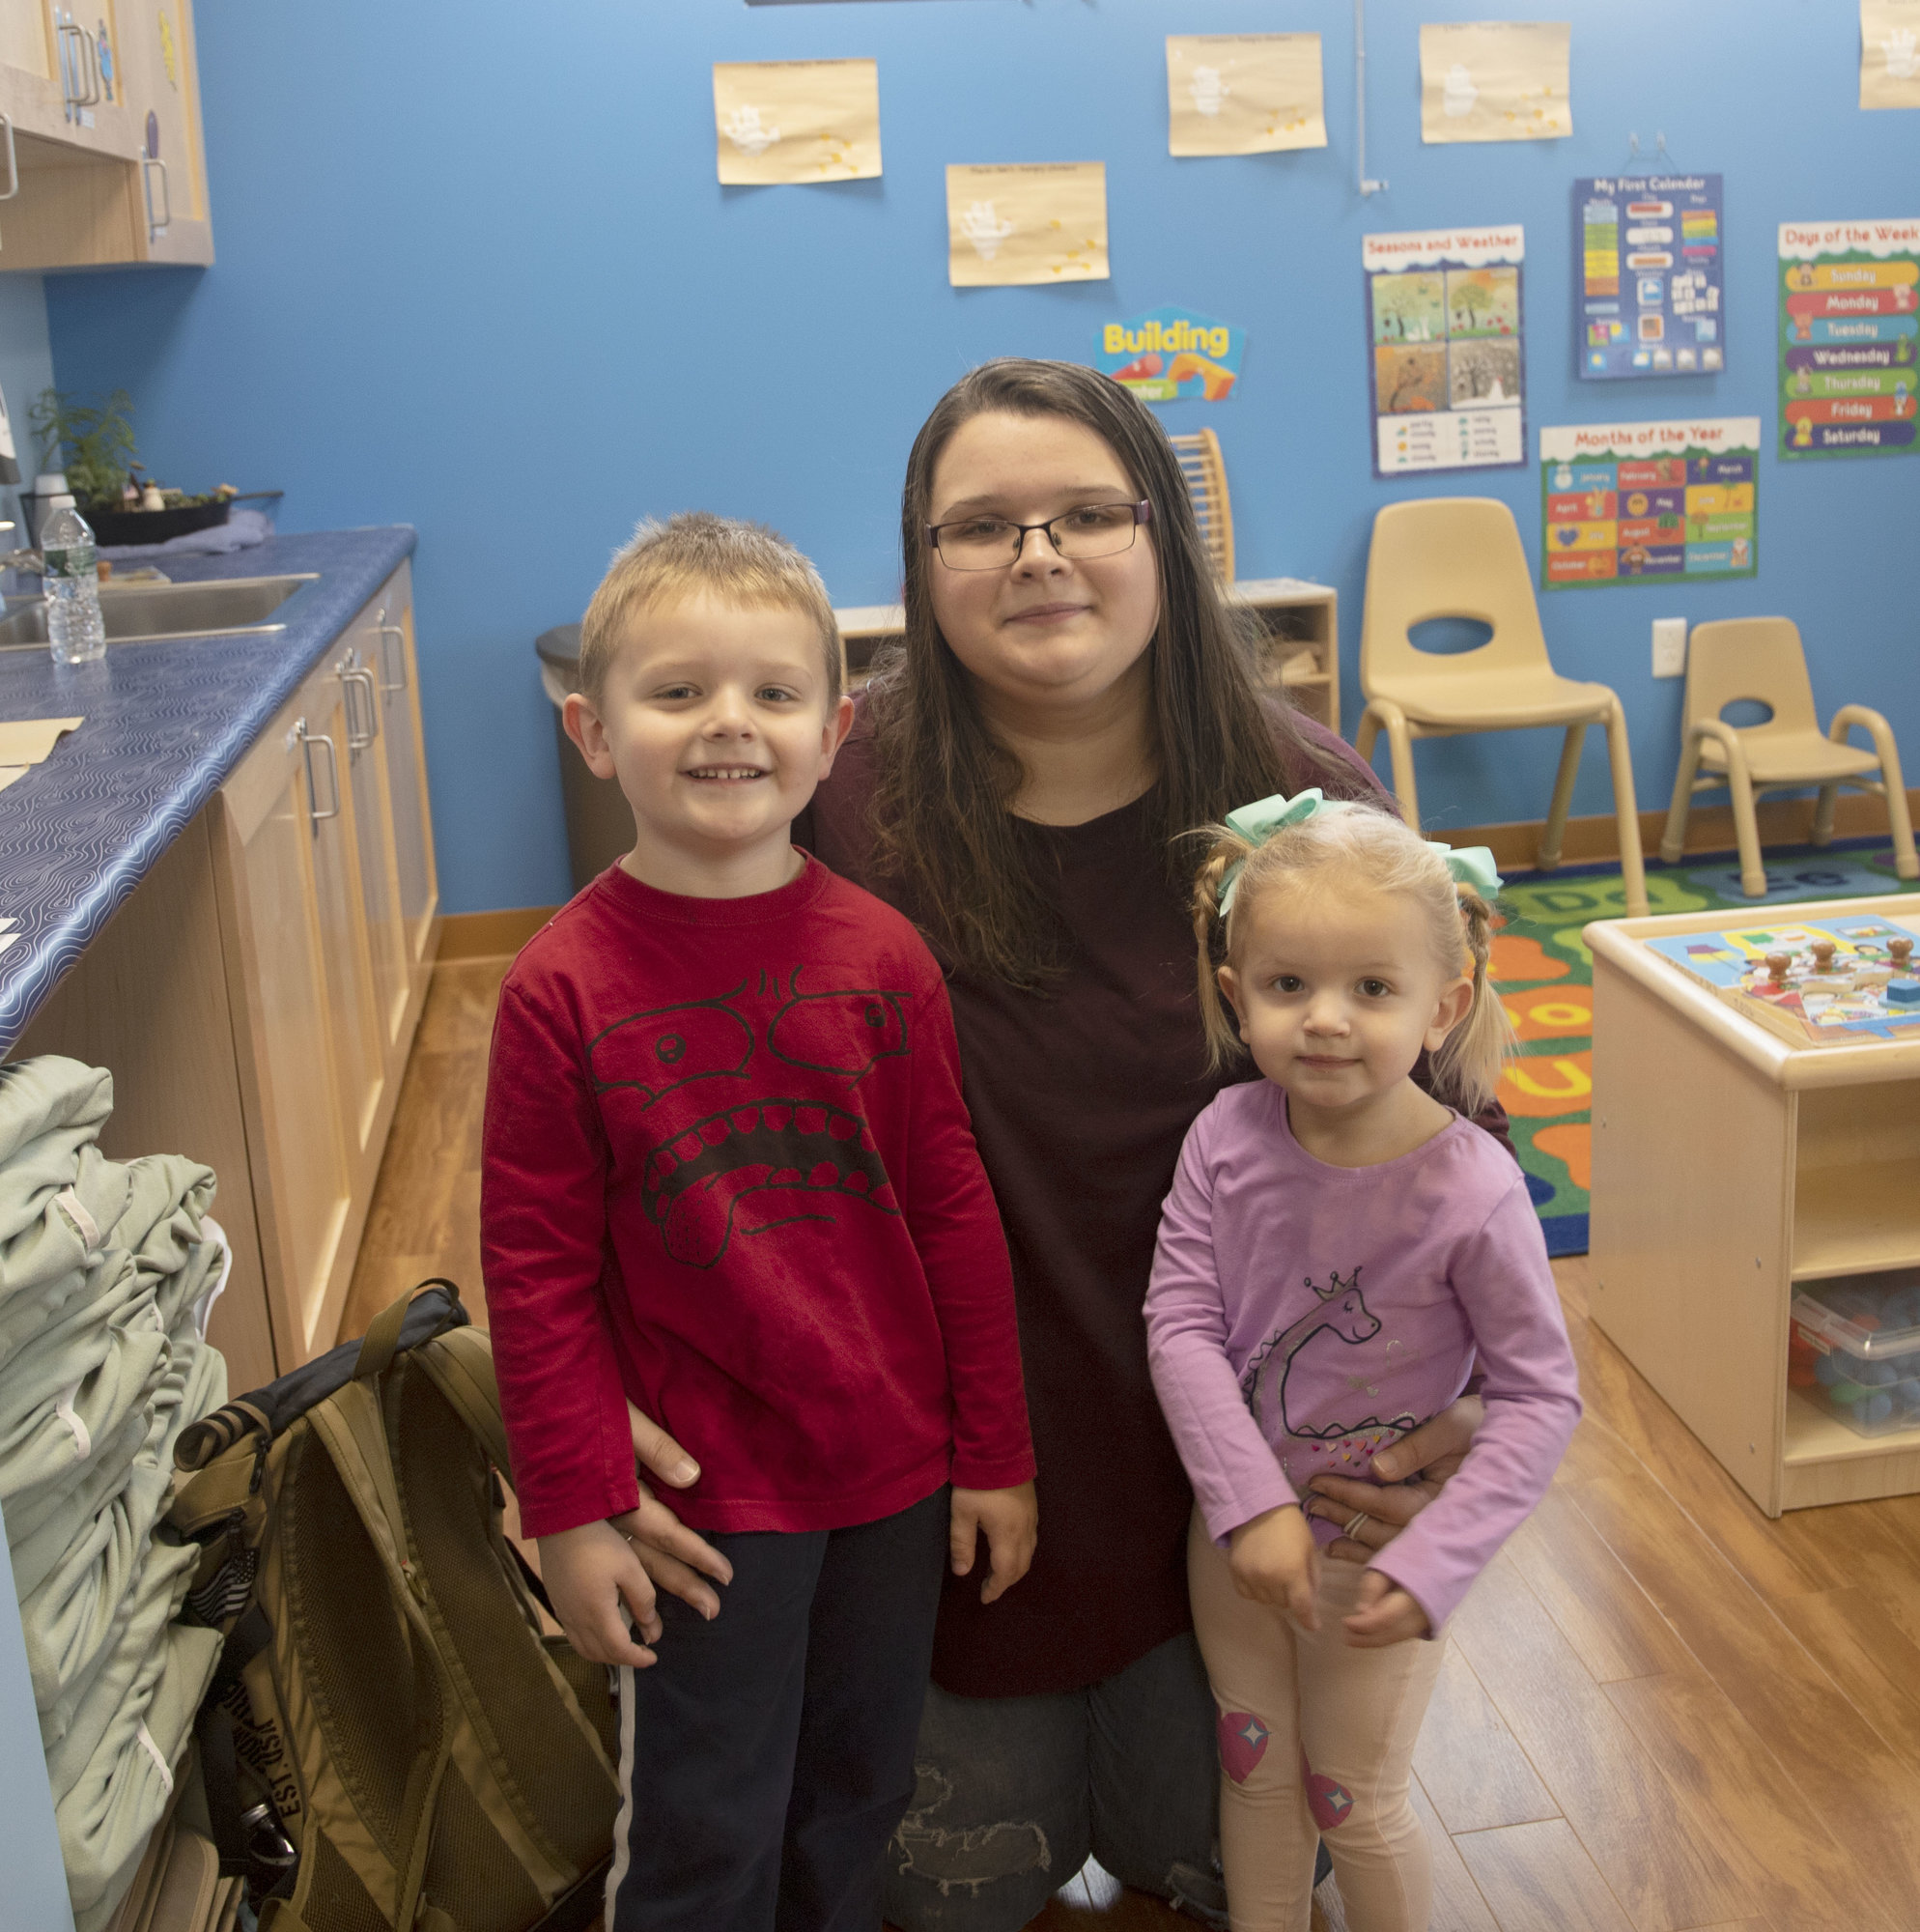 Heather Dries (center) stands with her two kids, Marshall (left) and Macie-Sue (right) at the TC3 Childcare Center.